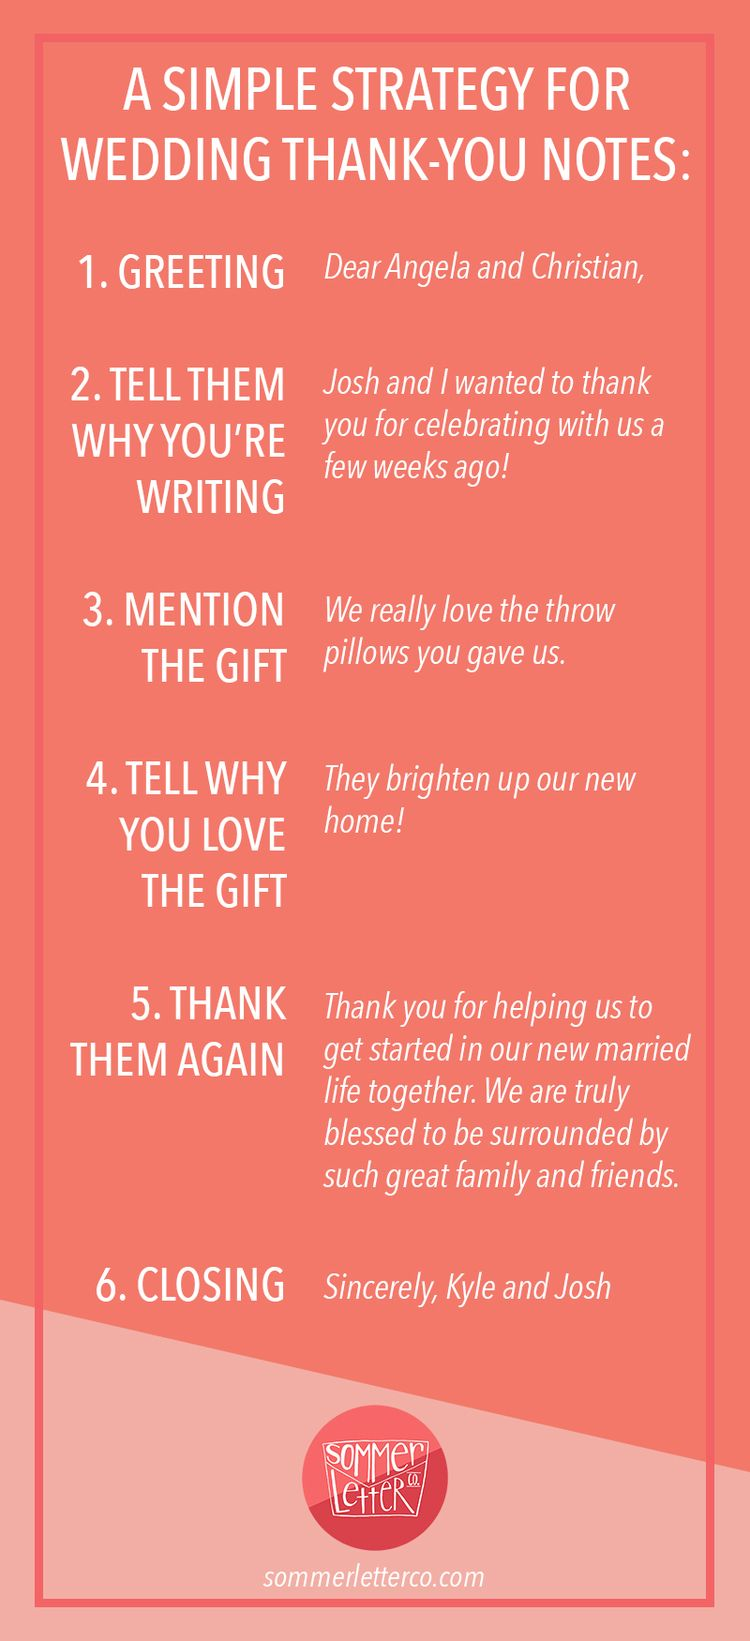 A Simple Strategy For Writing Wedding Thank You Notes How To Word Wedding Thank You Notes Wedding Thank You Wedding Thank You Cards Wedding Tips